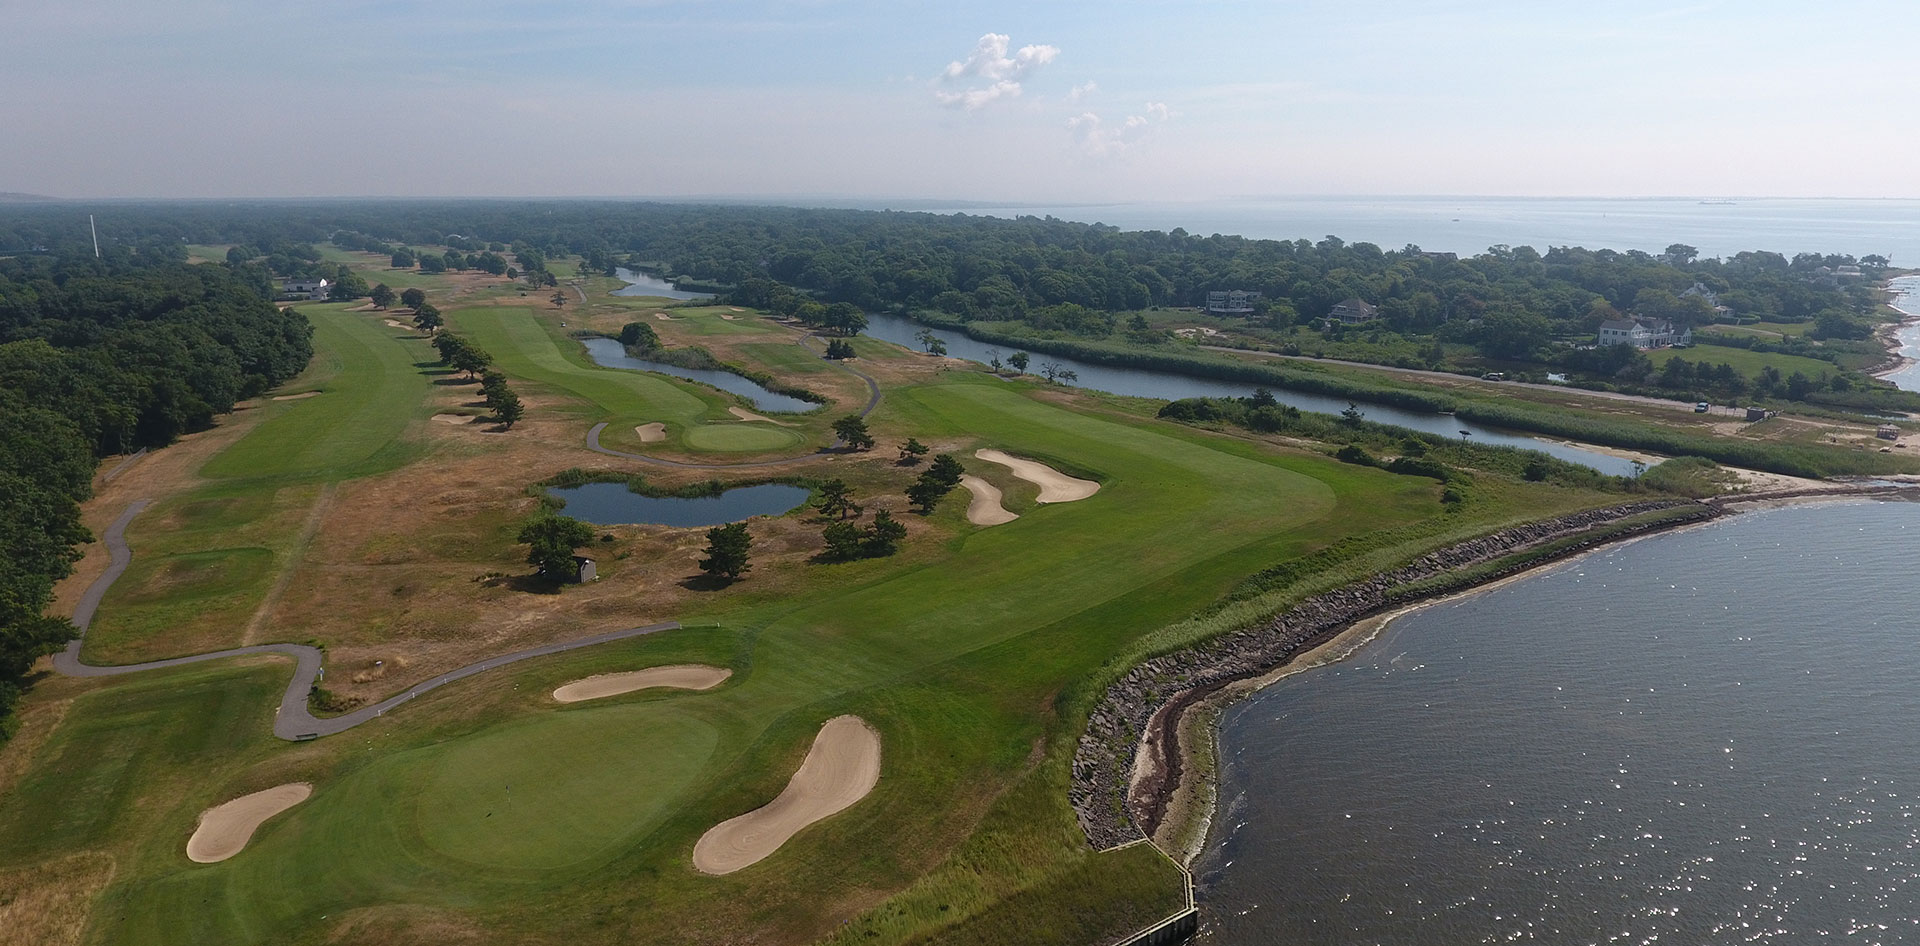 Article about the 15th hole at Bellport Golf Club featured in Golf.com